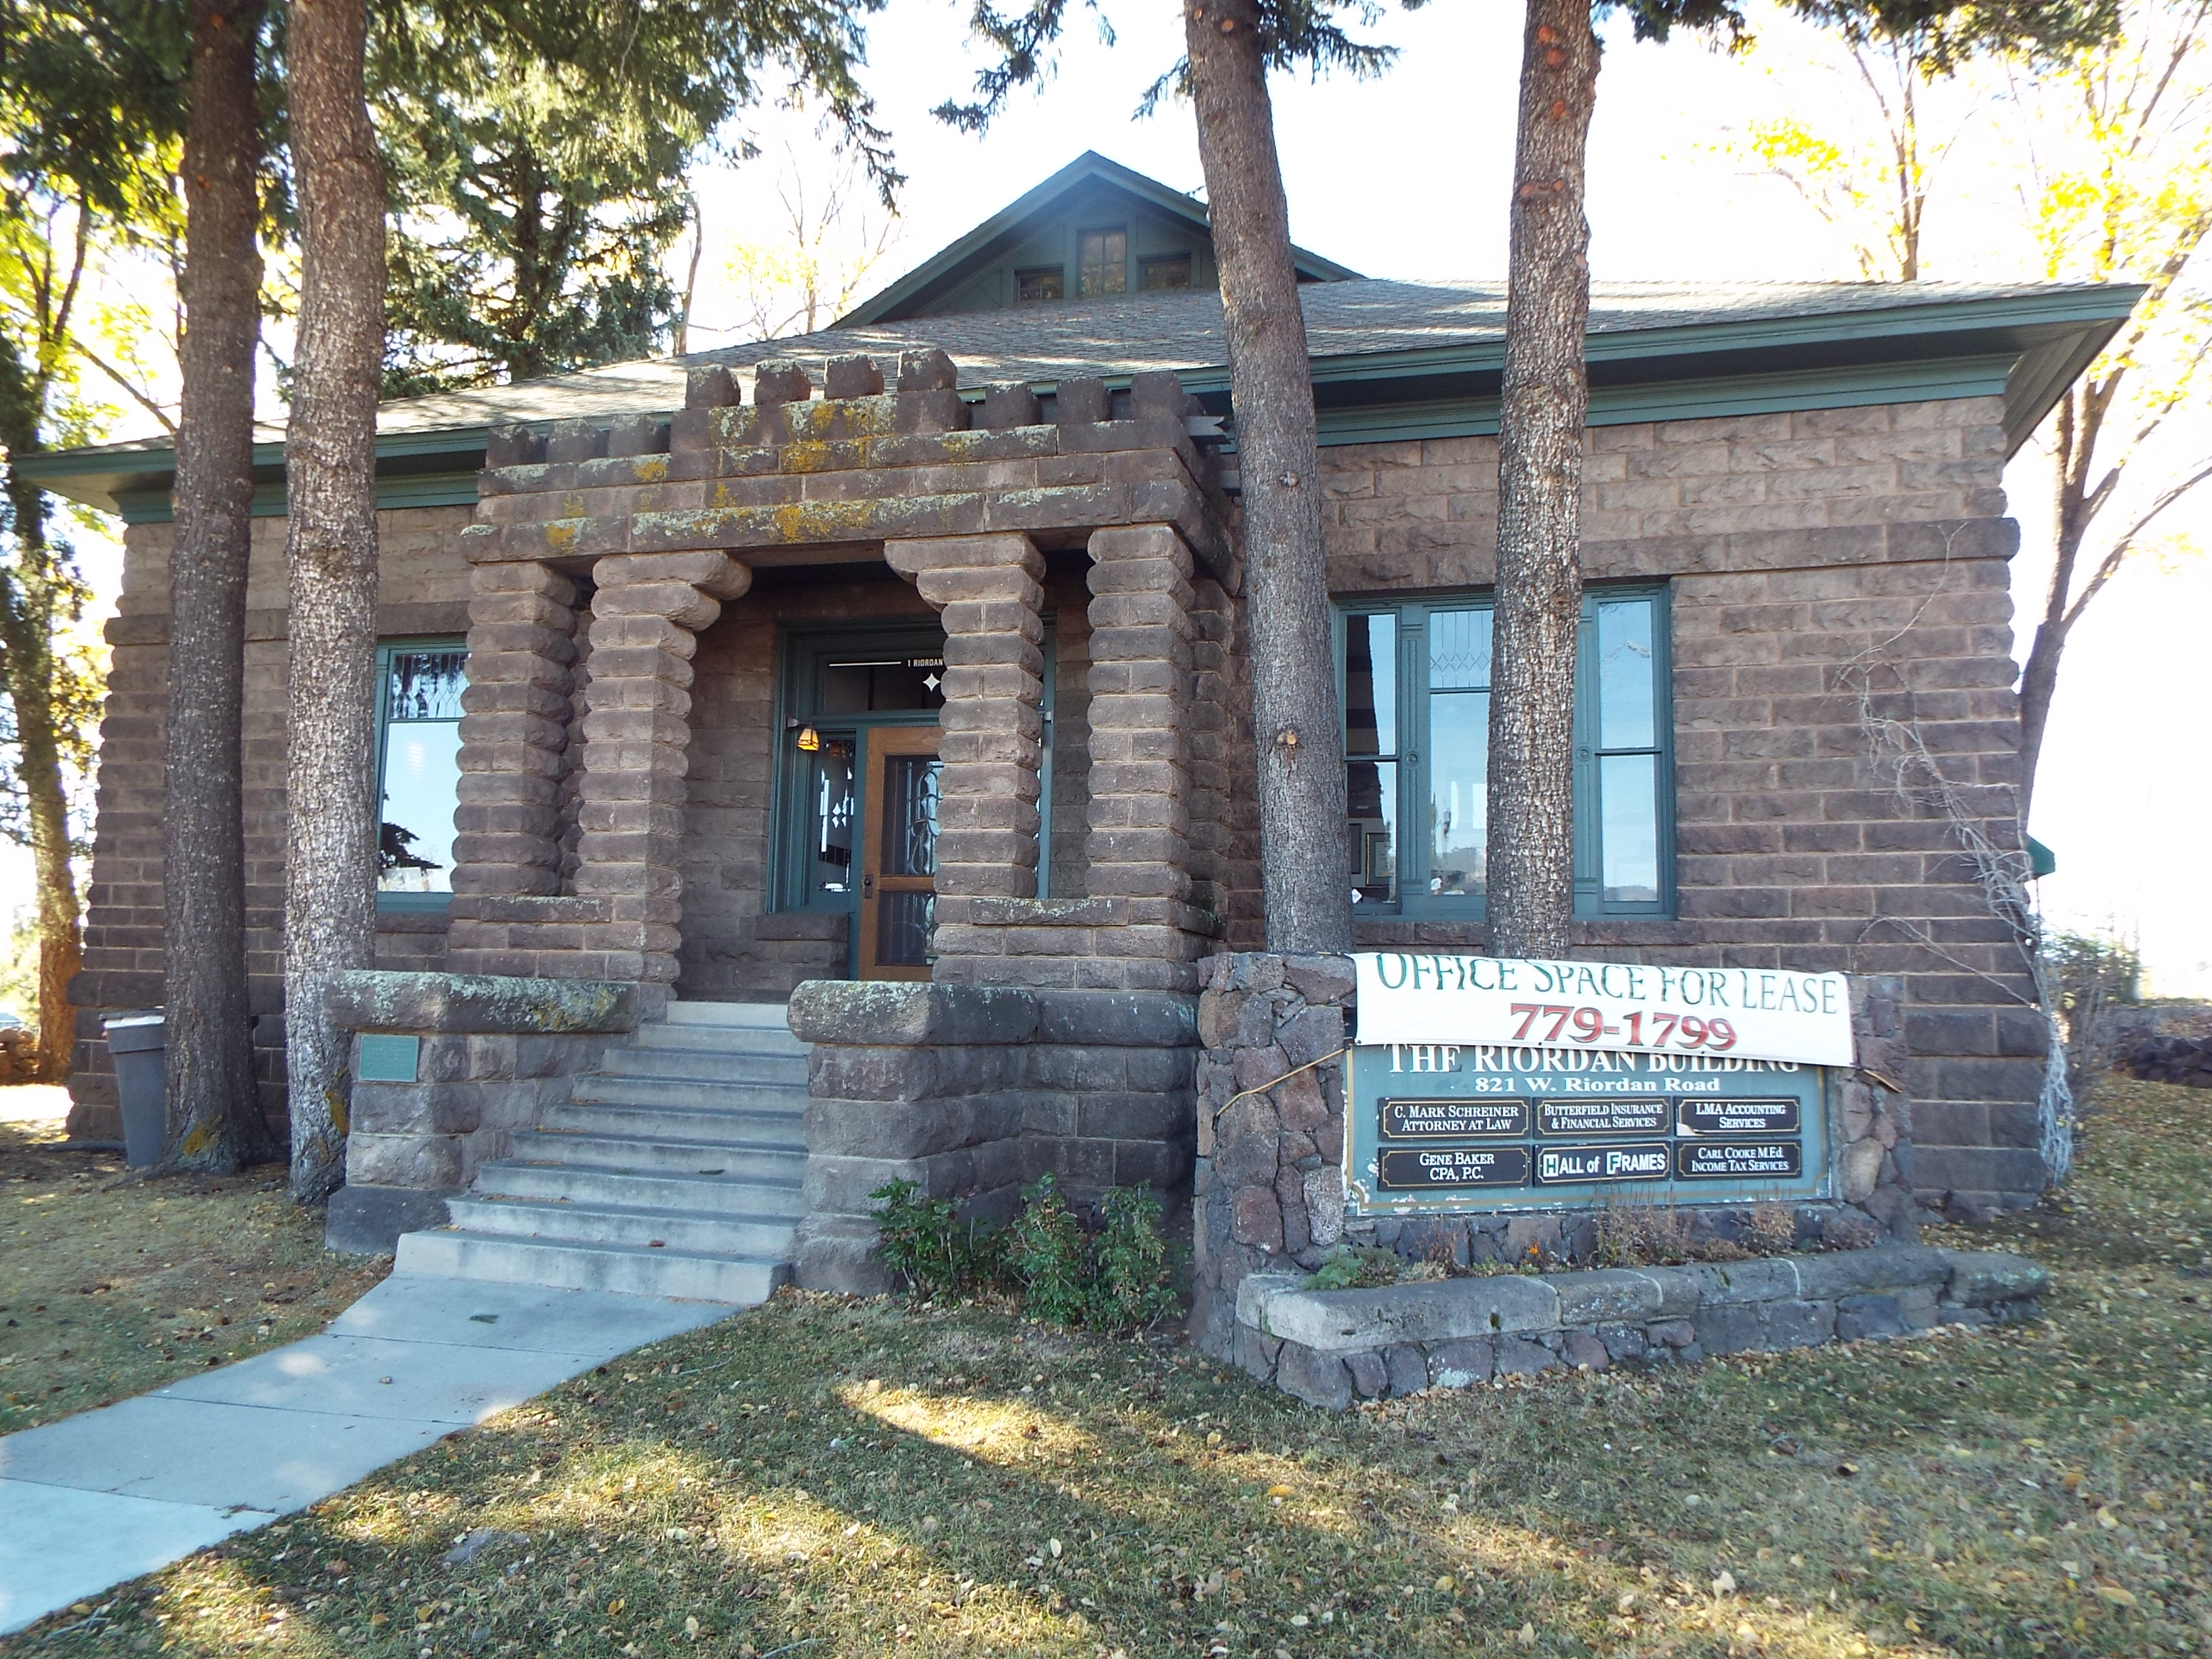 The Arizona Lumber and Timber Company Office